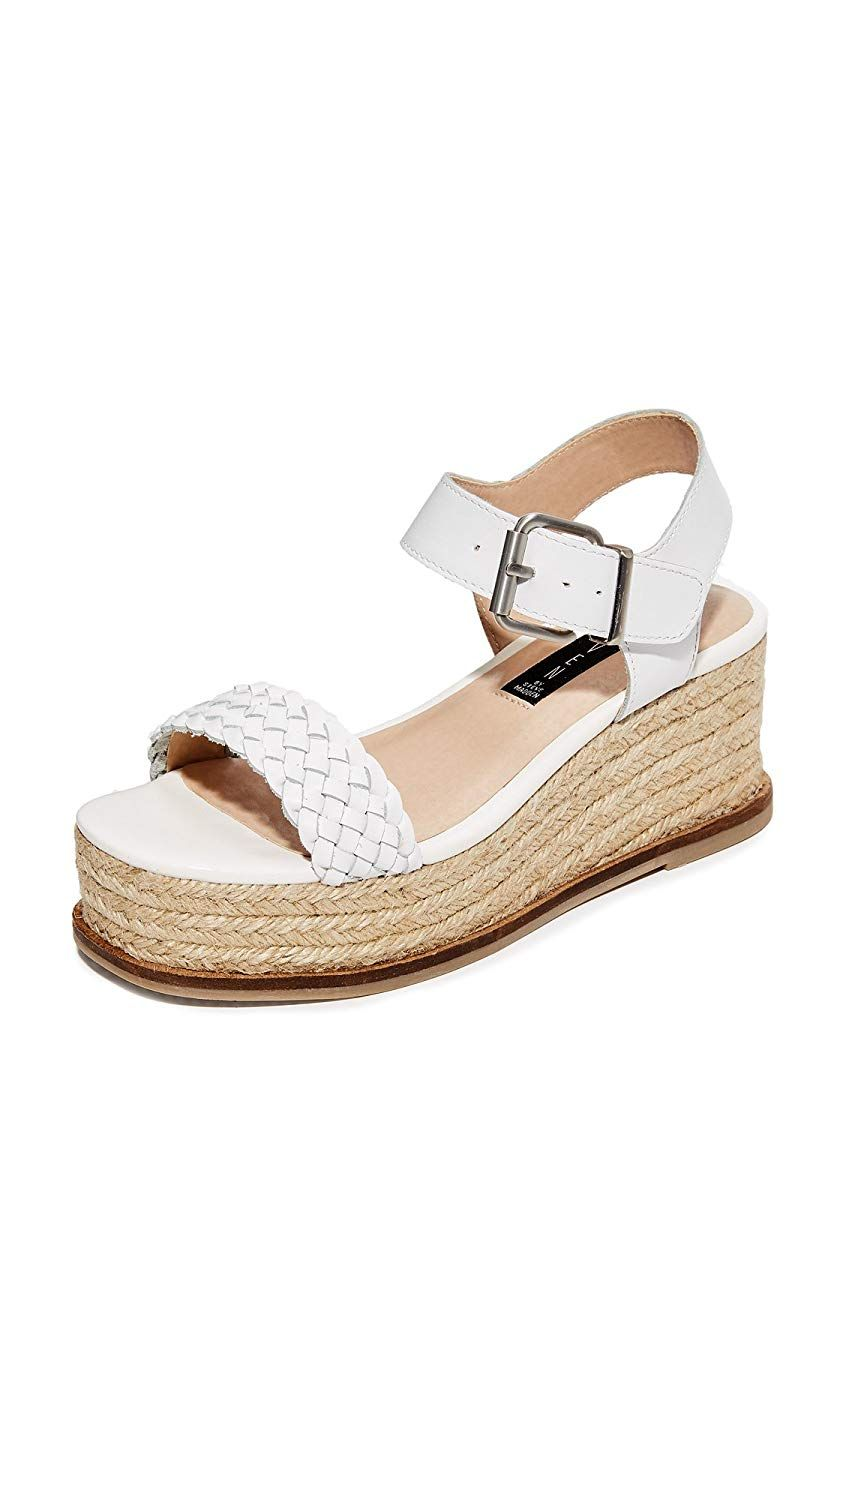 081bfe73e05 STEVEN by Steve Madden Women s Sabble Wedge Sandal     Sincerely hope you  actually like the image. (This is our affiliate link)   ...